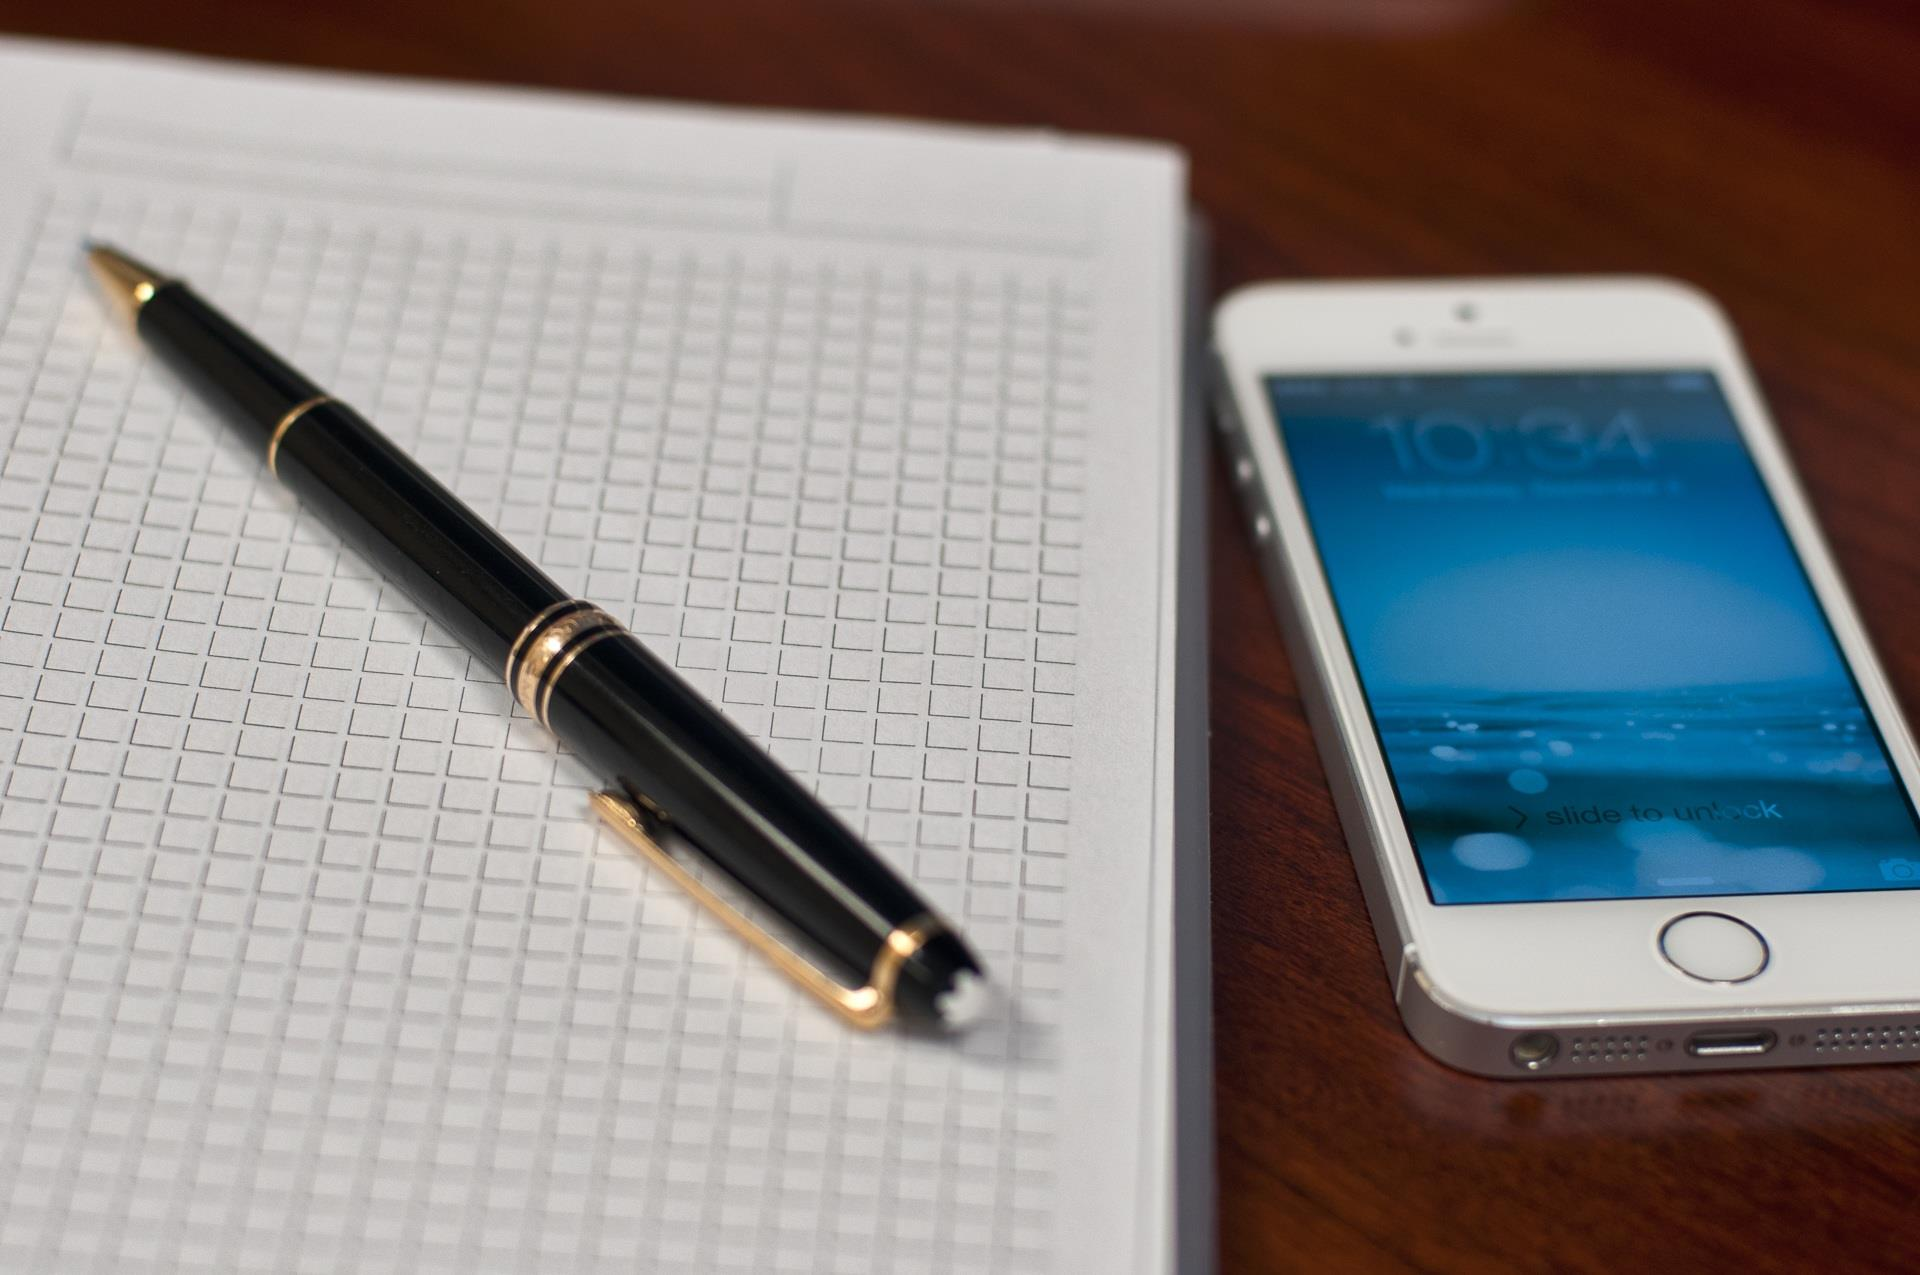 Notebook sitting next to a cell phone